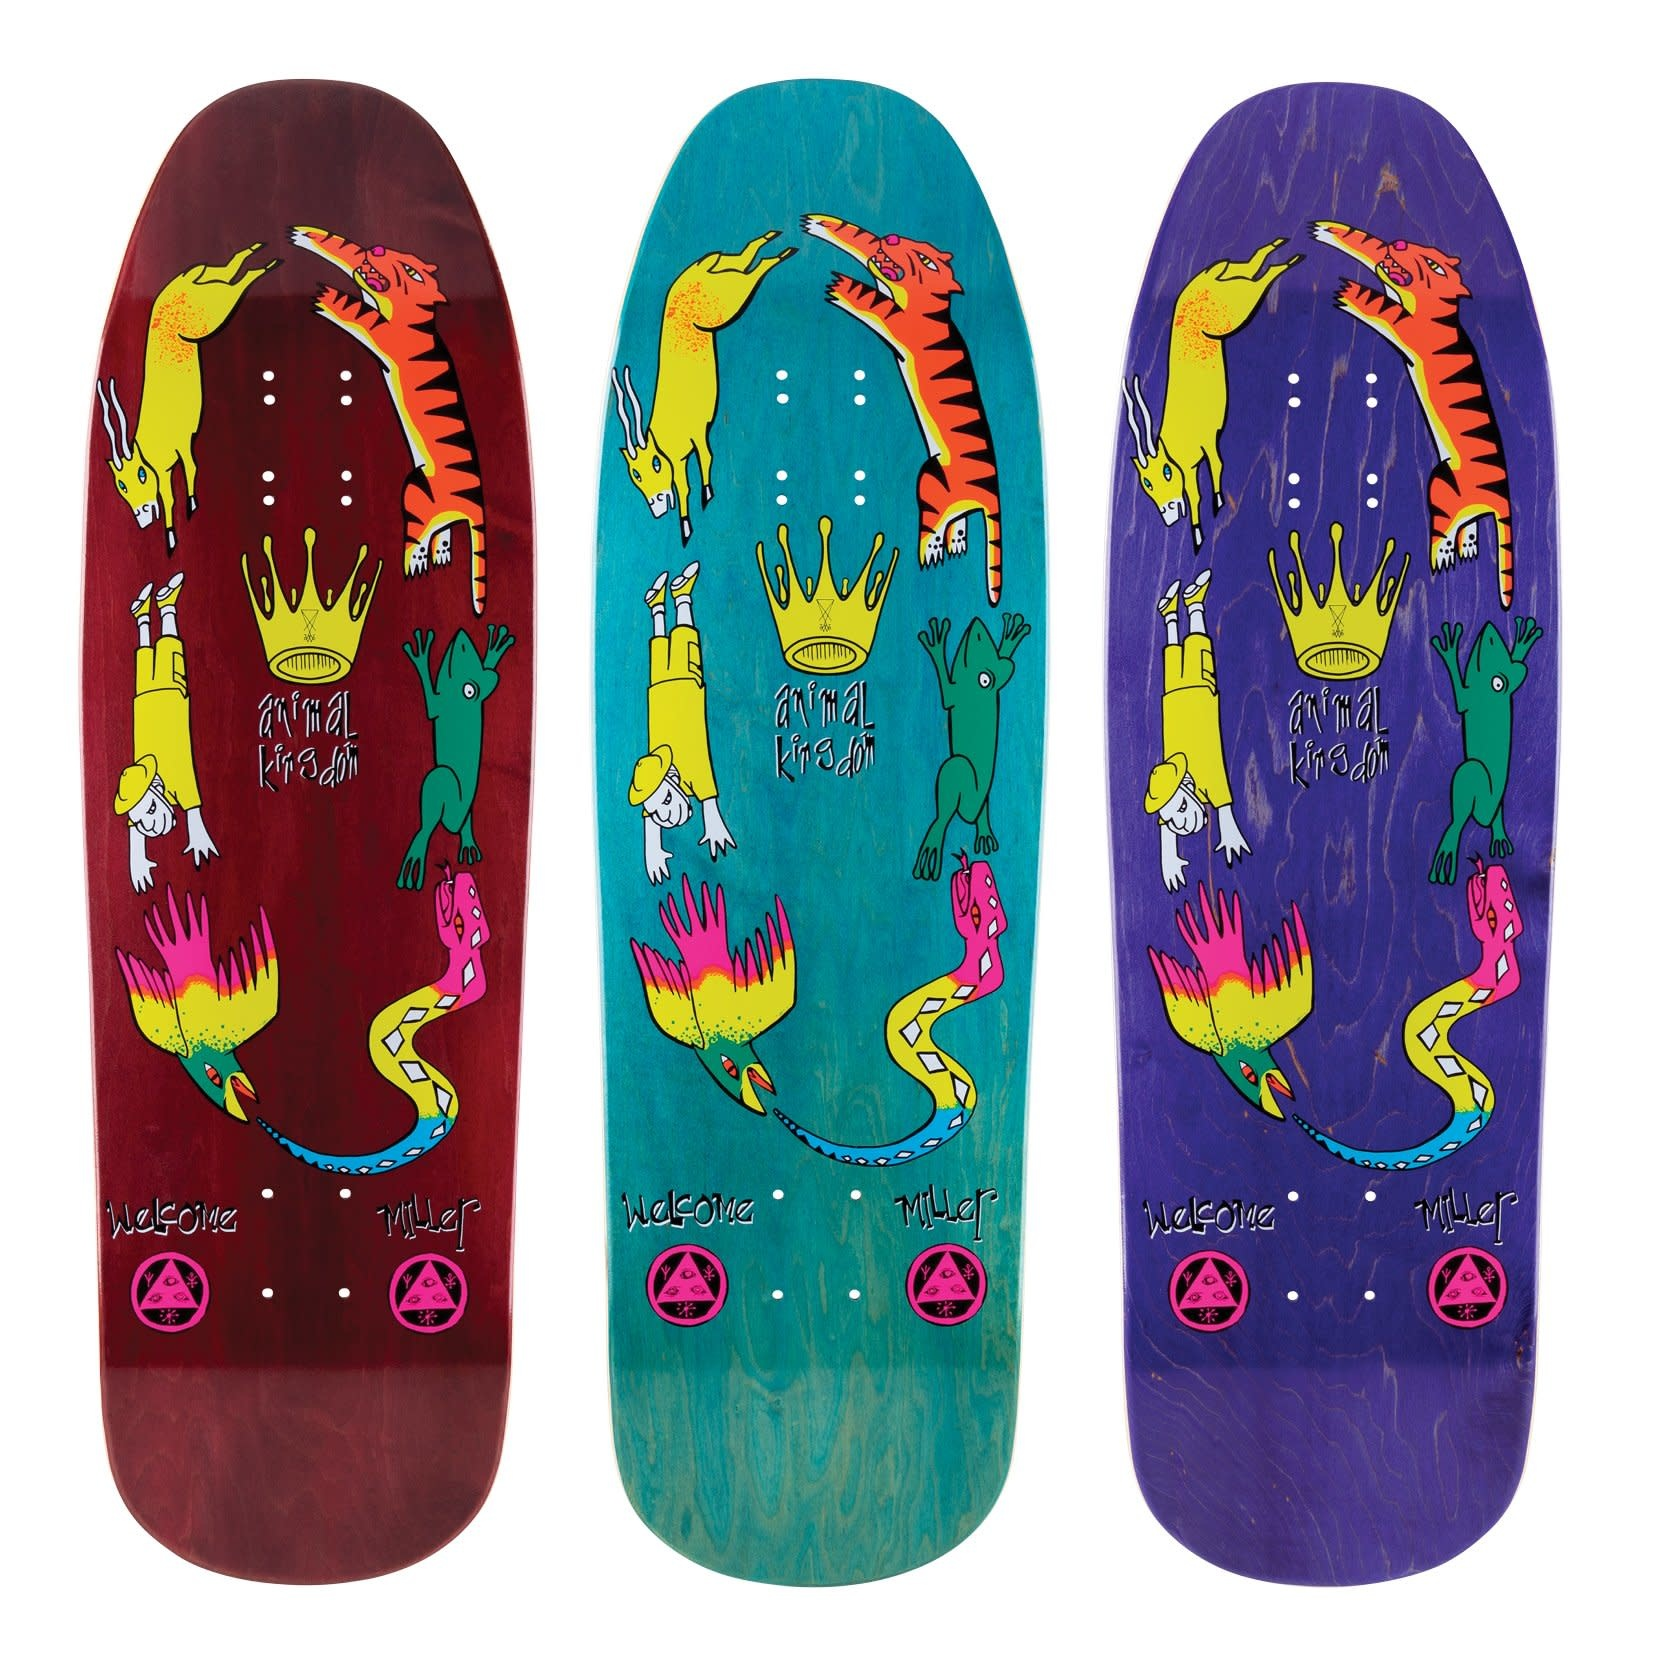 "Welcome Skateboards Animal Kingdom on Gaia 9.6"" Various Stains"